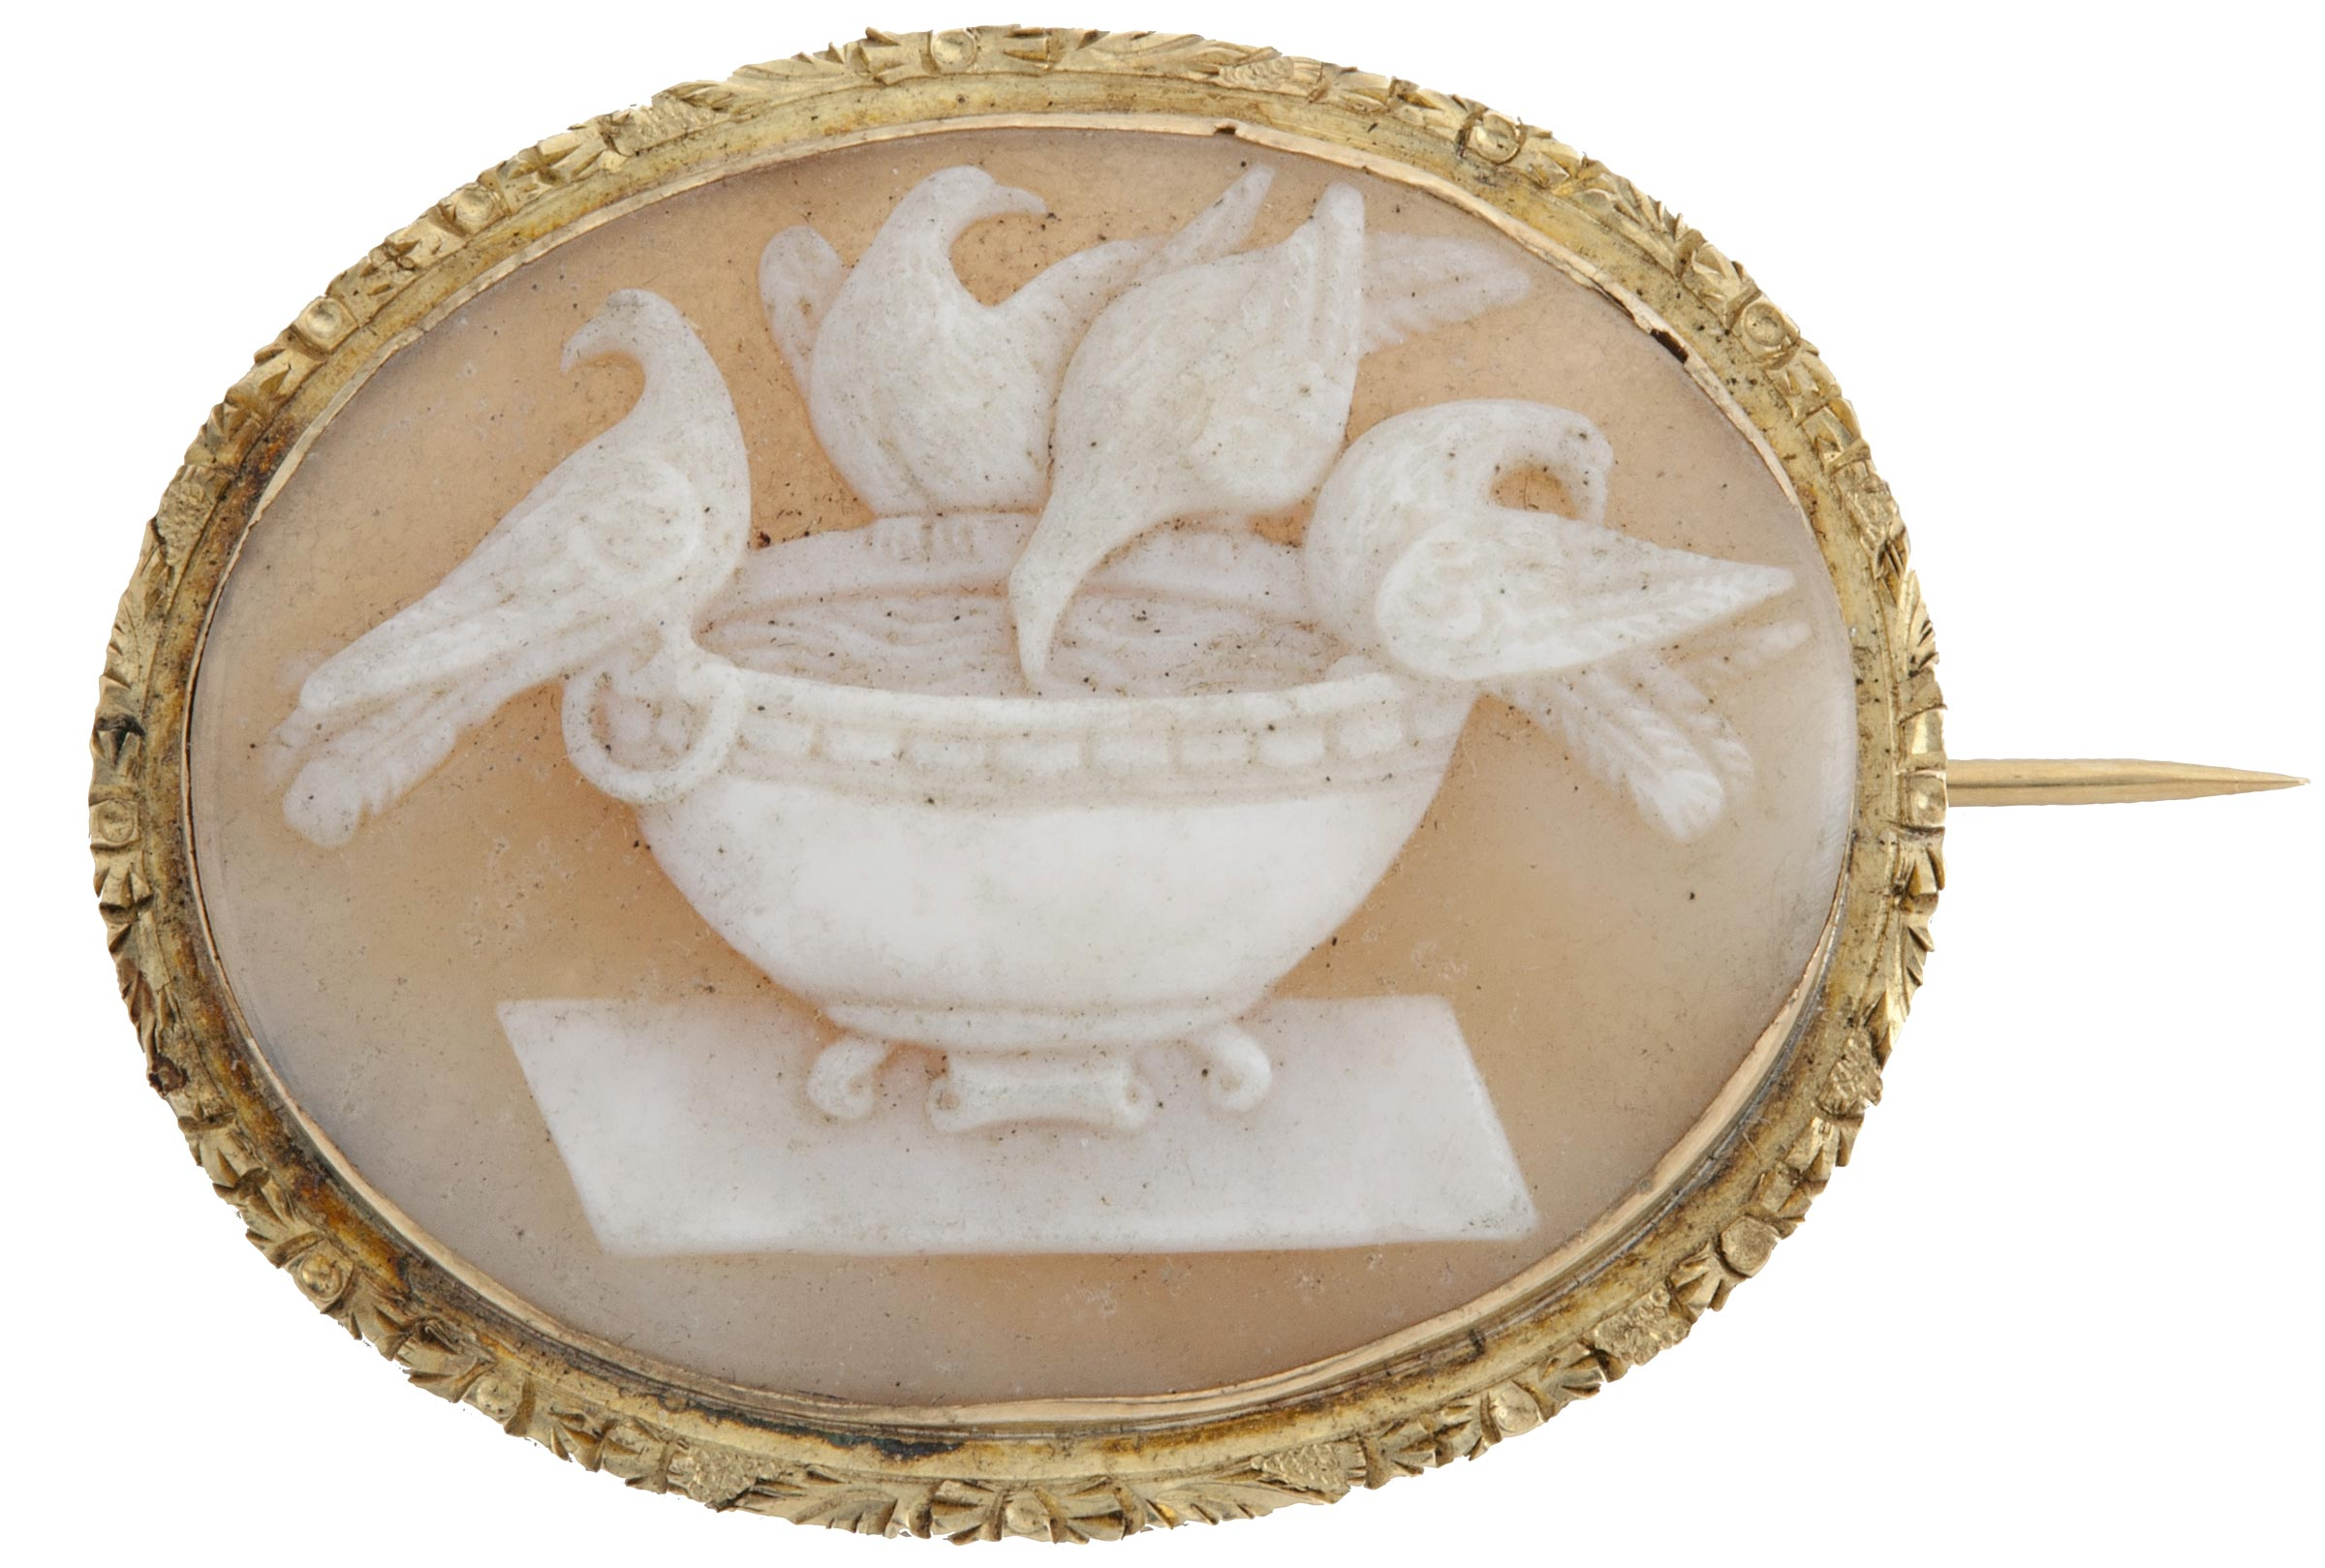 Cameo brooch, ca. 1850. Carved shell, 1 ⅝ x 1 15⁄16 in. (4.1 x 4.9 cm). Worcester Art Museum, Bequest of Stephen Salisbury III, 1906.39.